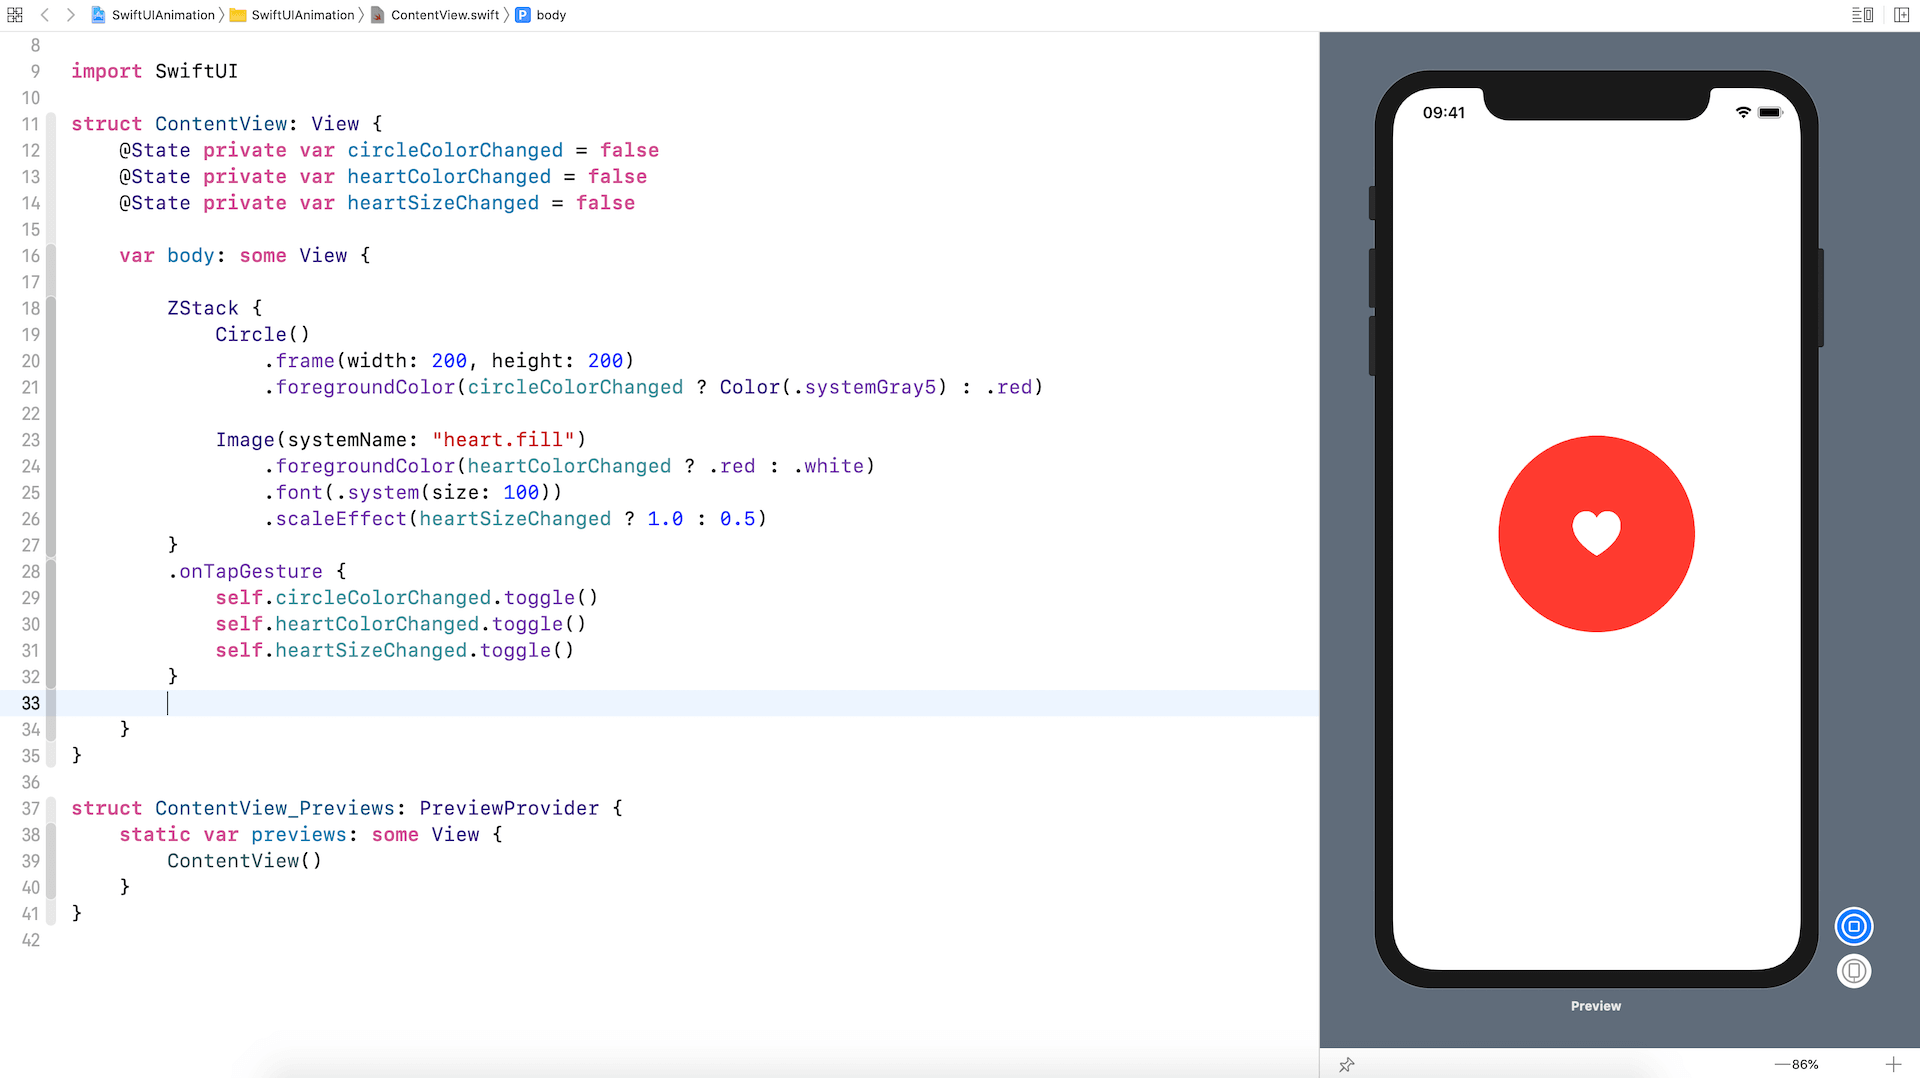 swiftui-animation-project